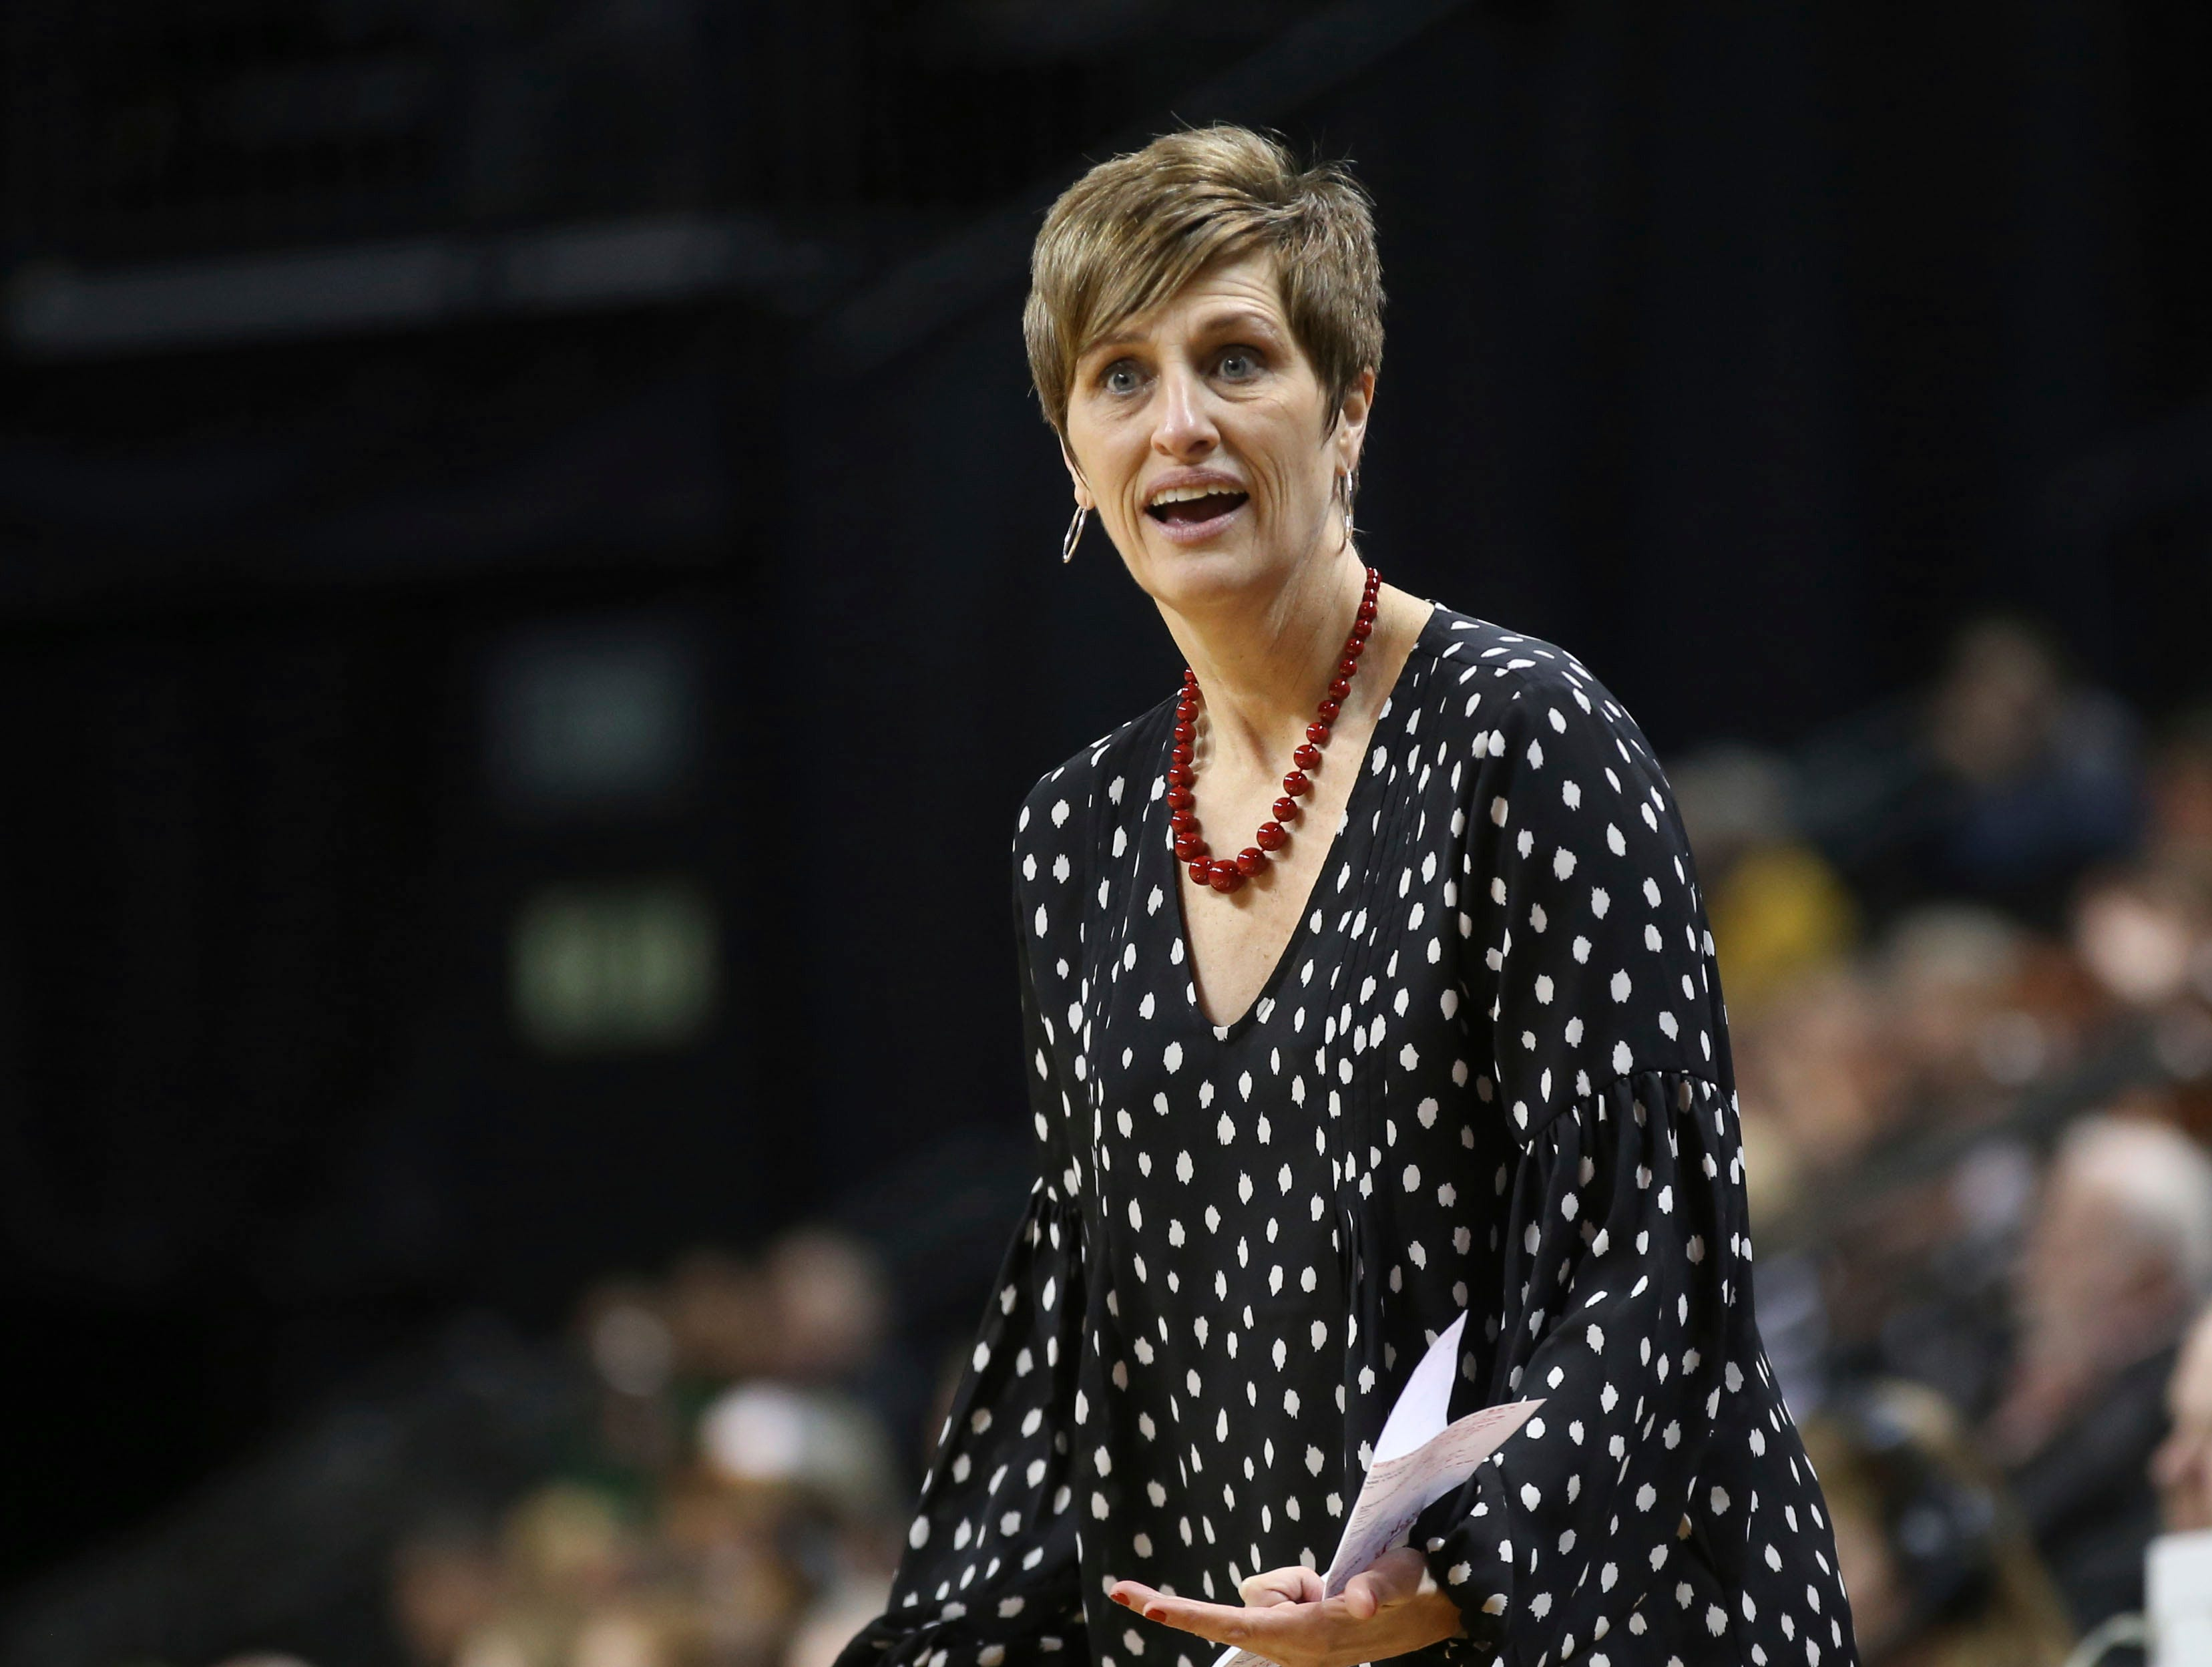 Indiana coach Teri Moren questions a call during the first half of the team's NCAA women's college basketball tournament game against Texas on Friday, March 22, 2019, in Eugene, Ore. (AP Photo/Chris Pietsch)